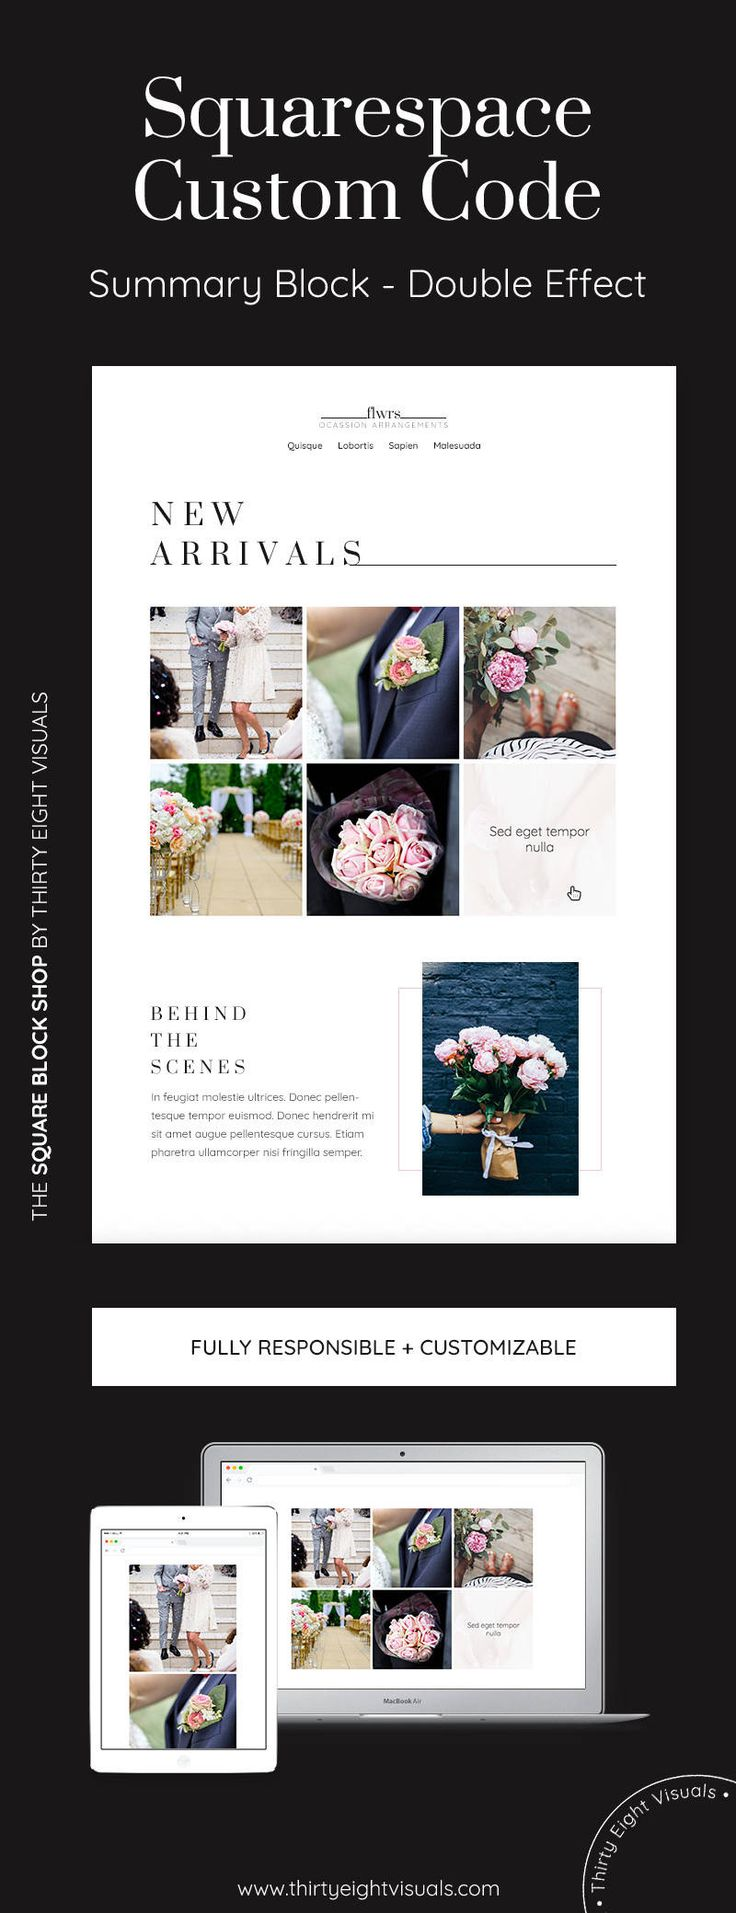 Squarespace plugin, custom code - Add an awesome overlay effect to your Squarespace Grid Summary Block with this custom code to get your title and metadata show on hover! Take a look!